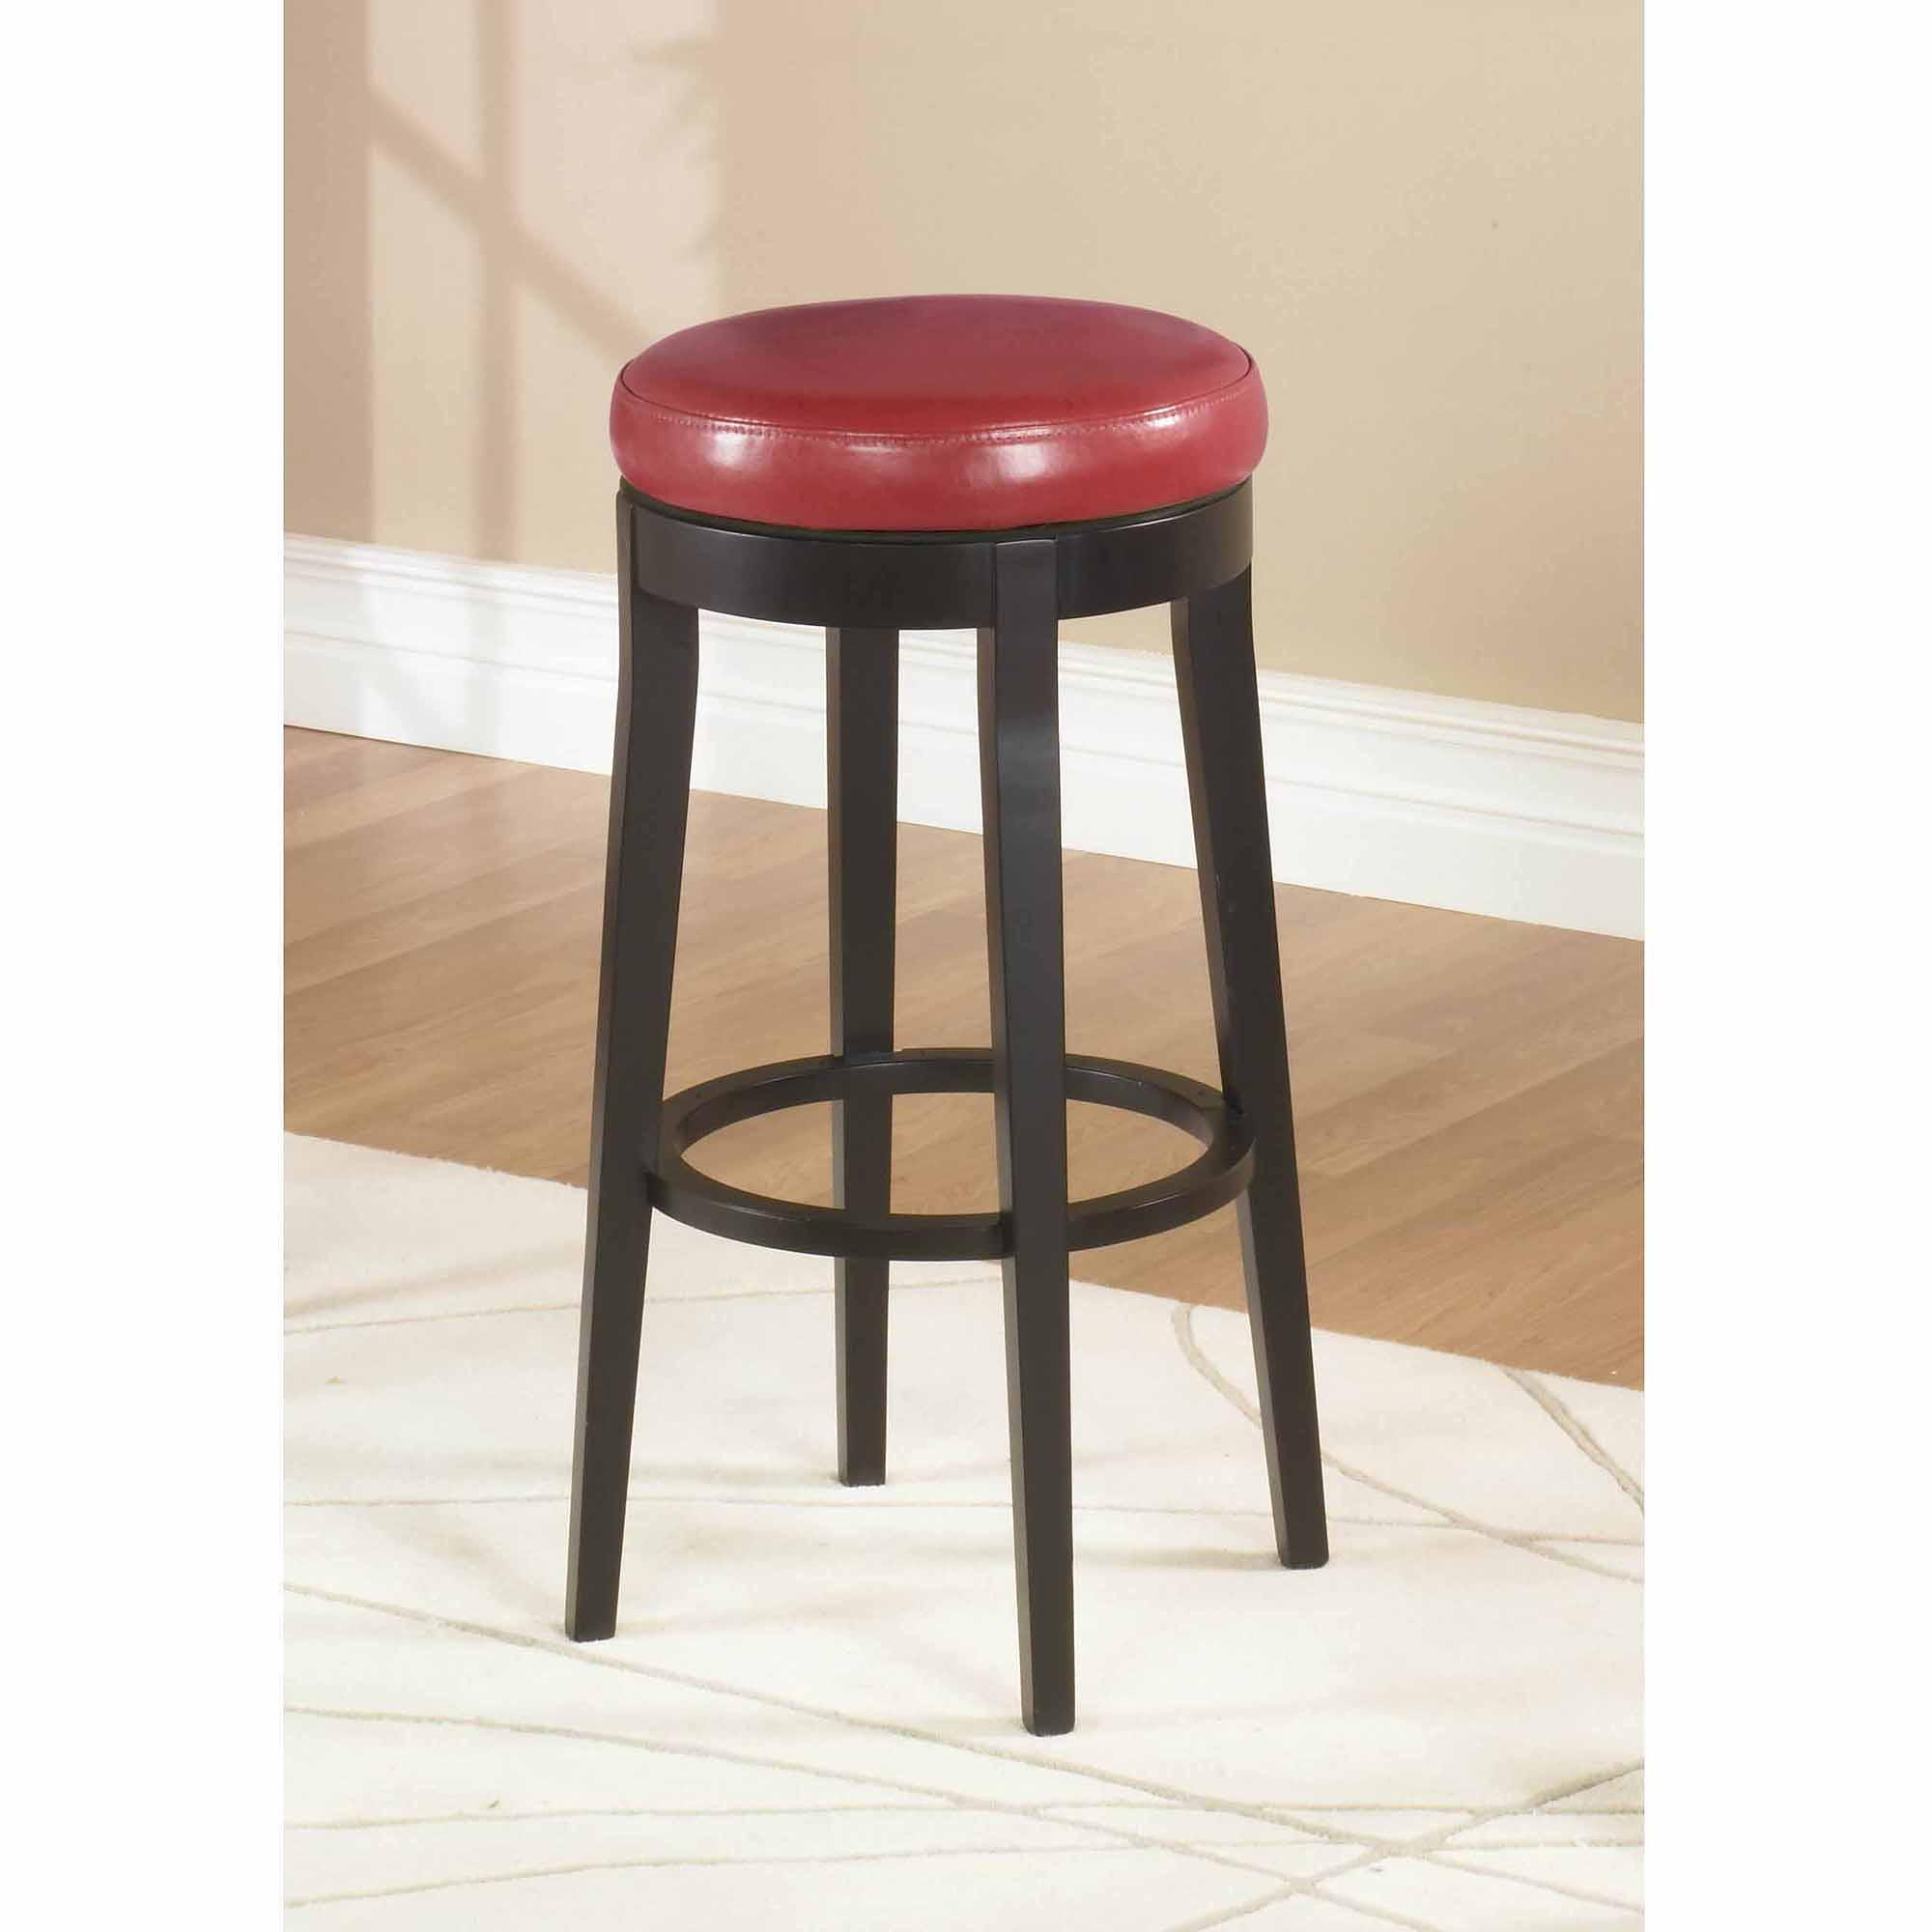 "Mbs-450 26"" Backless Swivel Barstool, Red"